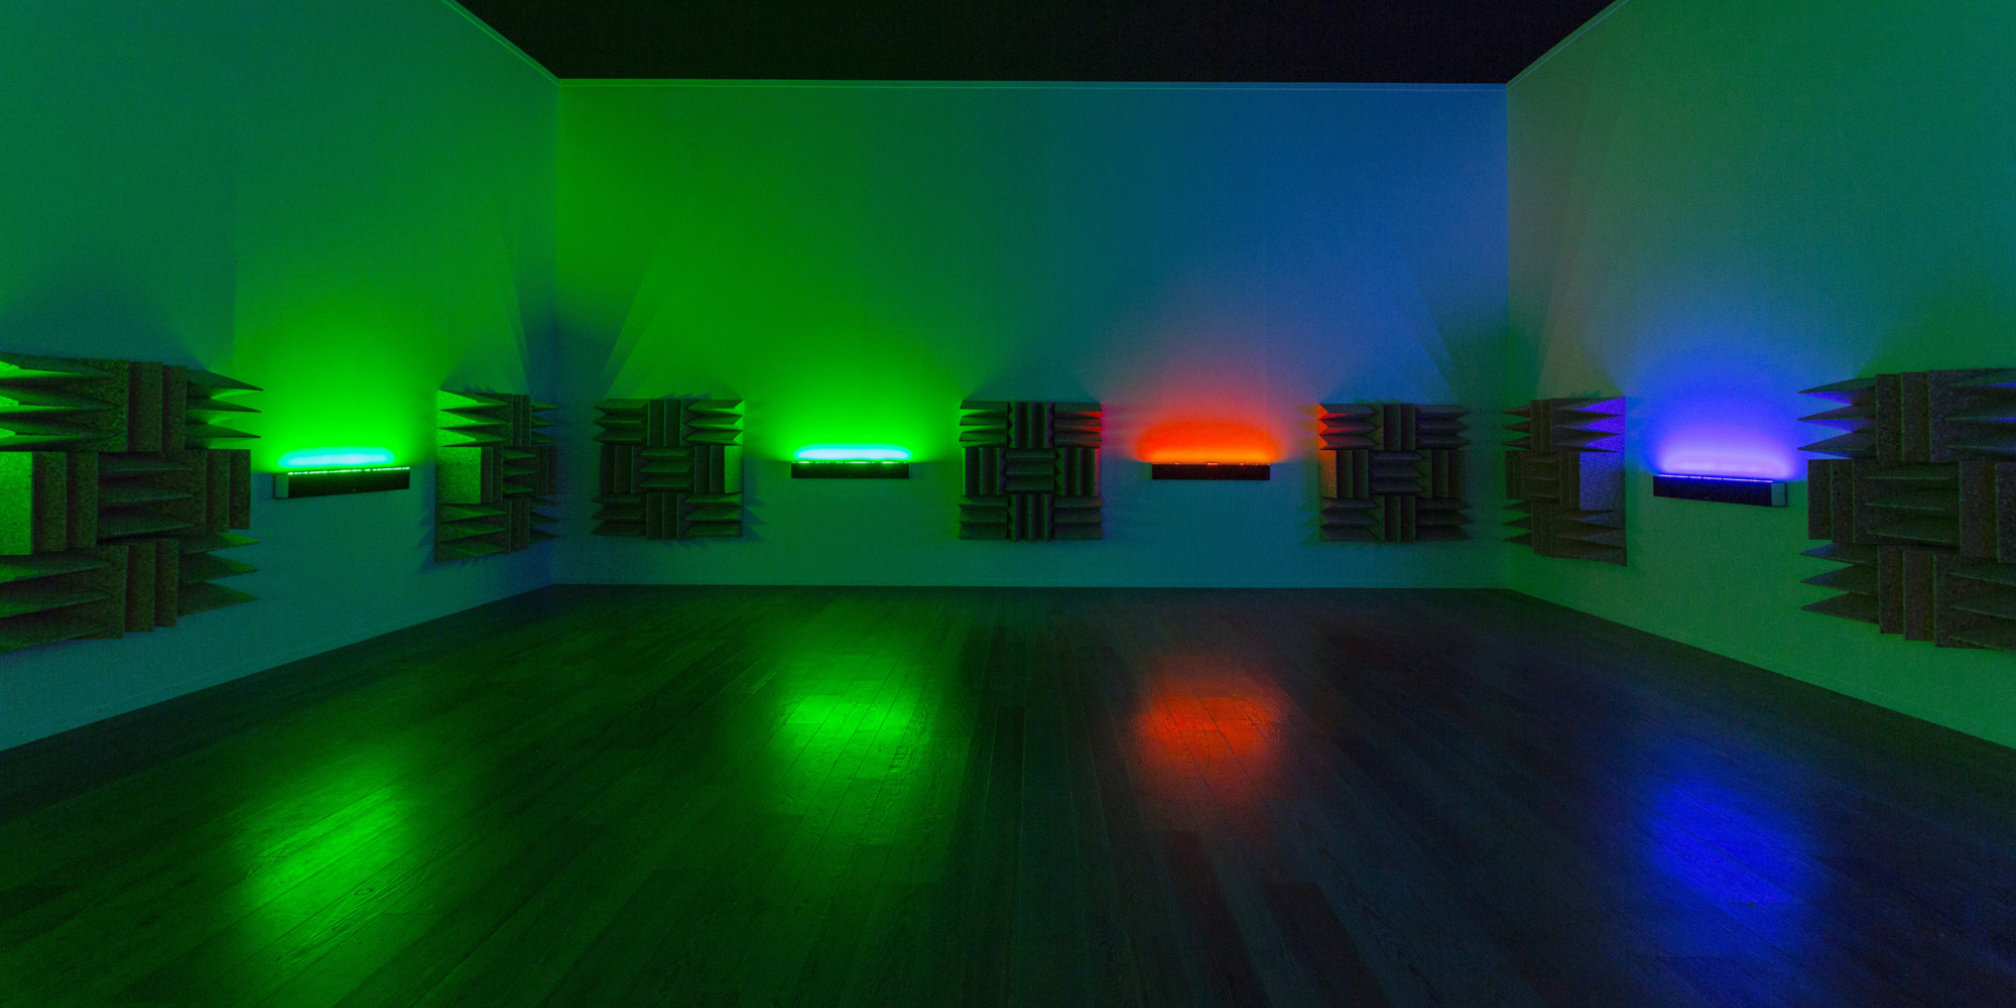 Haroon Mirza, A Chamber for Horwitz; Sonakinatography Transcriptions in Surround Sound, 2015. © 2015 Museum Tinguely, Basel. Photo: Bettina Matthiessen